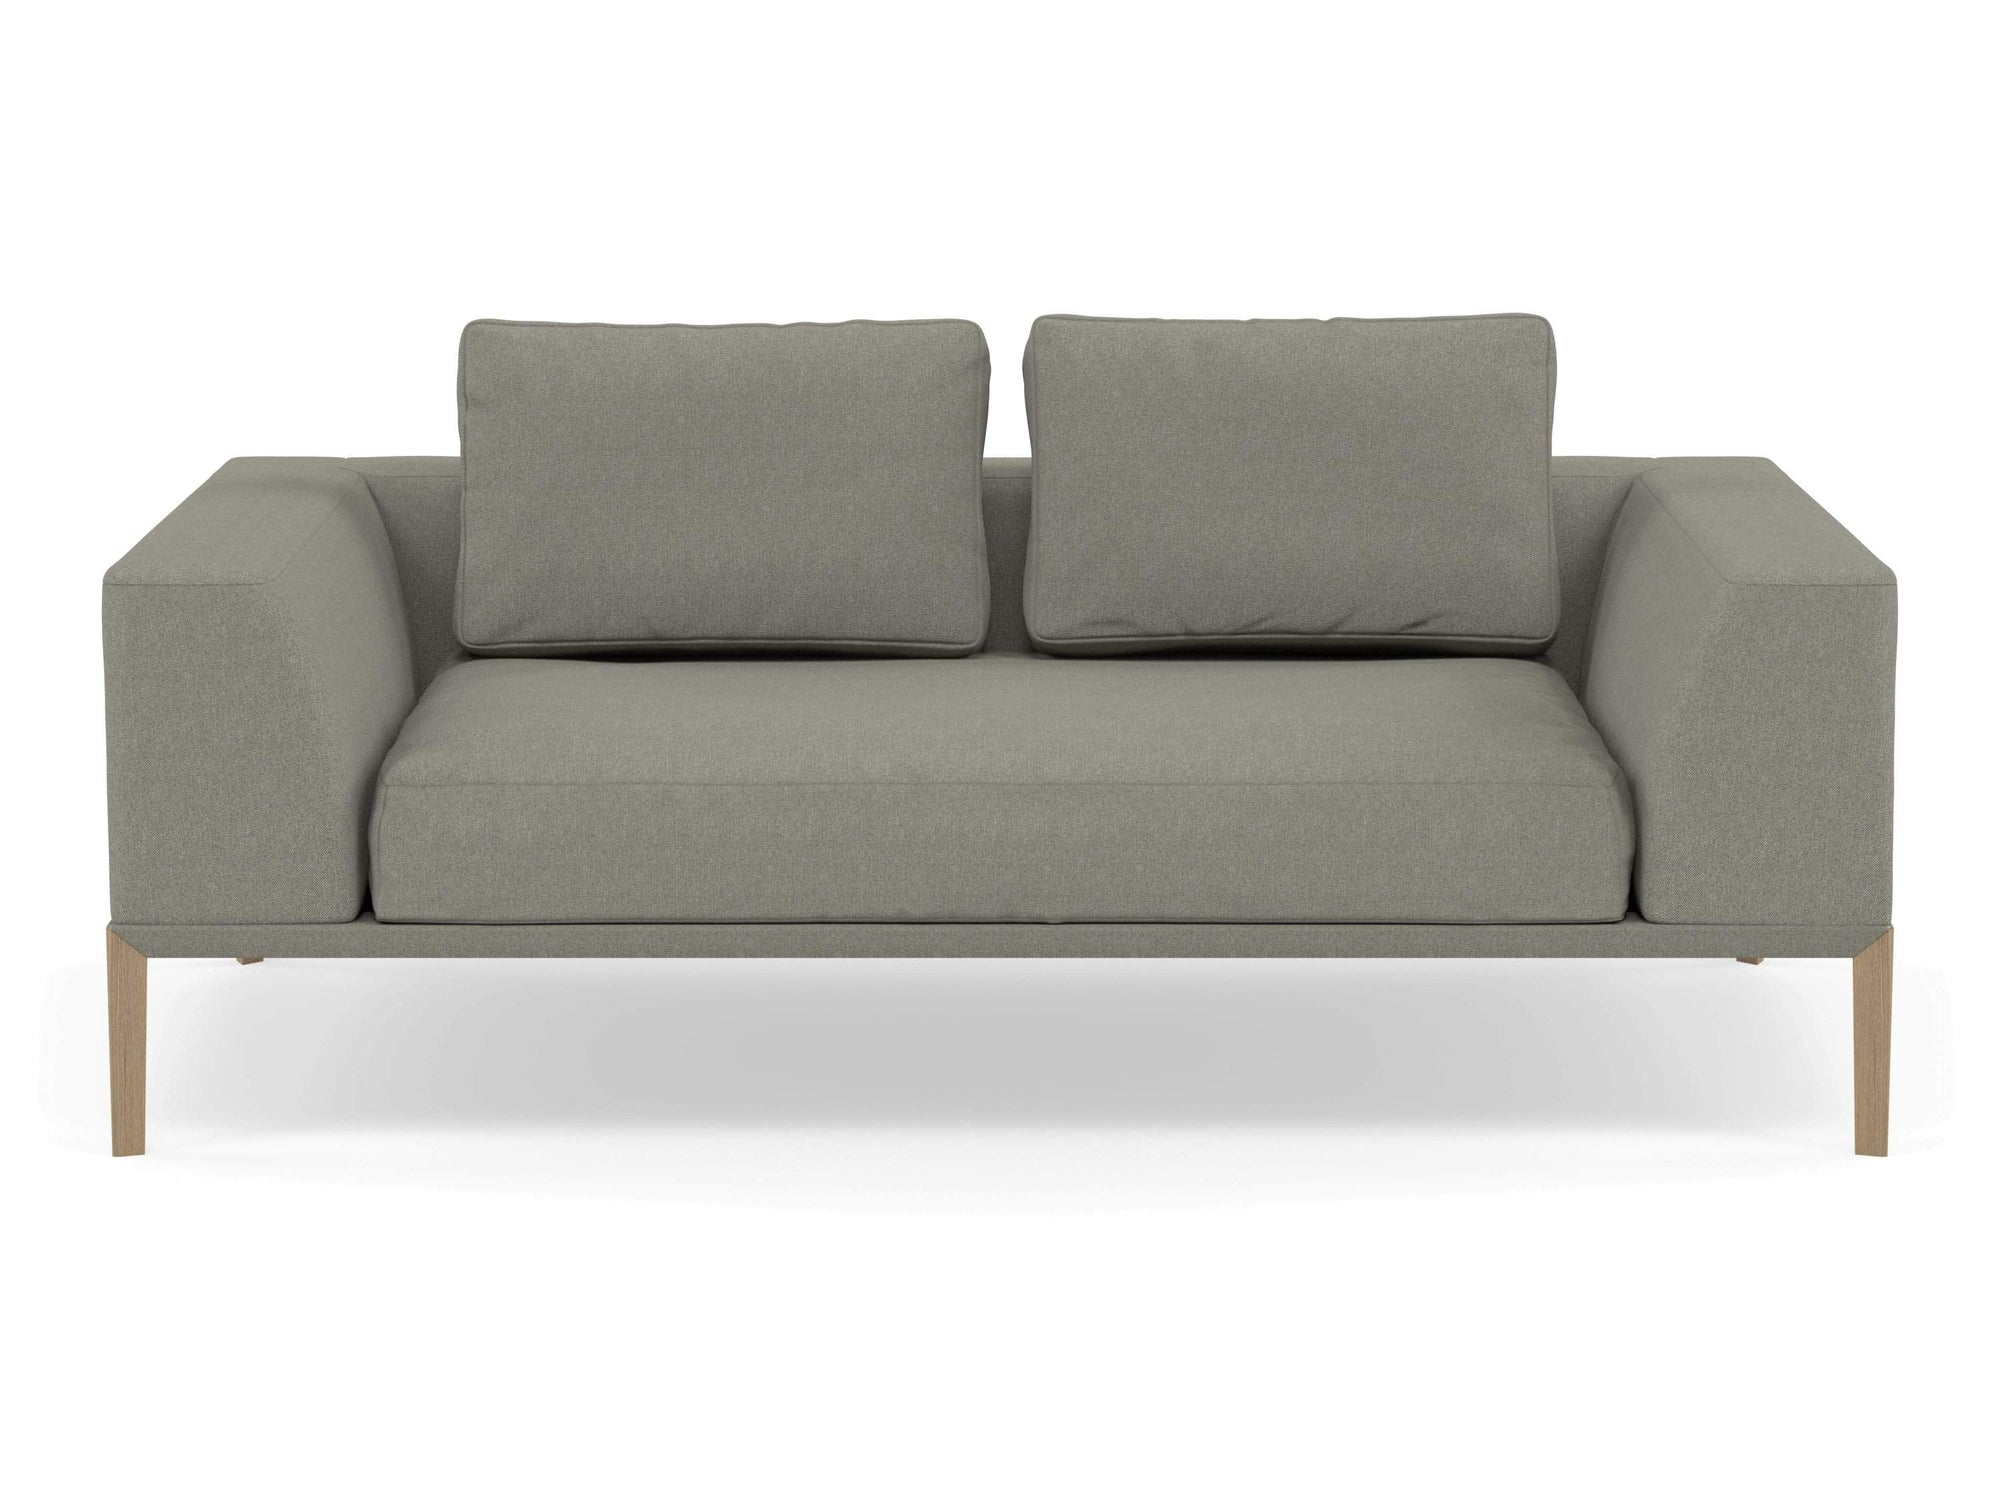 Modern 2 Seater Sofa with 2 Armrests in Silver Grey Fabric-Natural Oak-Distinct Designs (London) Ltd